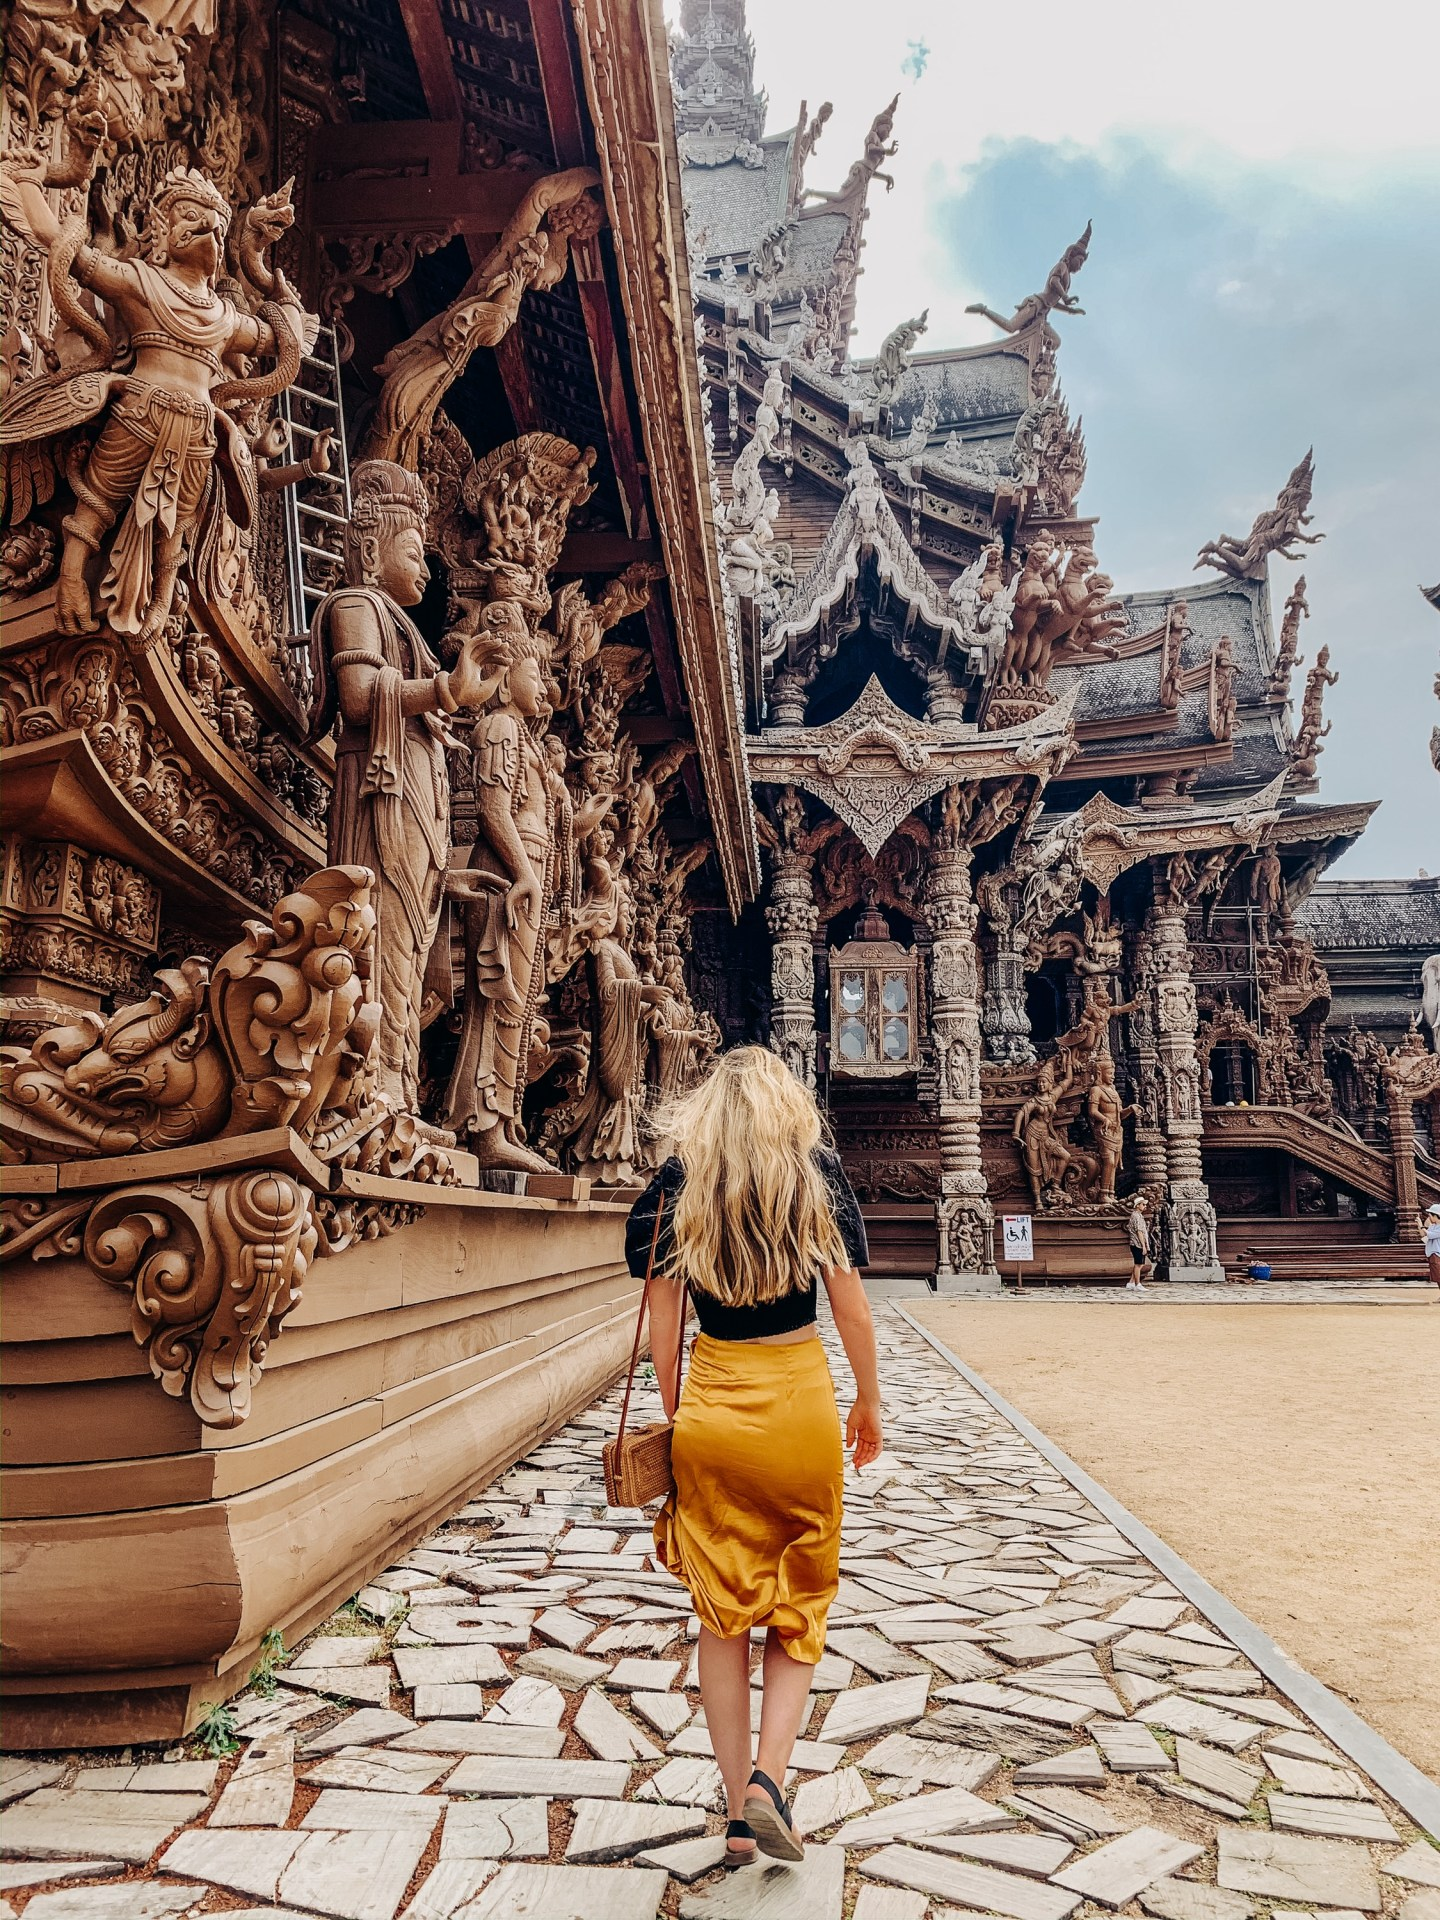 Sanctuary of Truth. Pattaya, Thailand. Construction is expected to be completed in 2050.